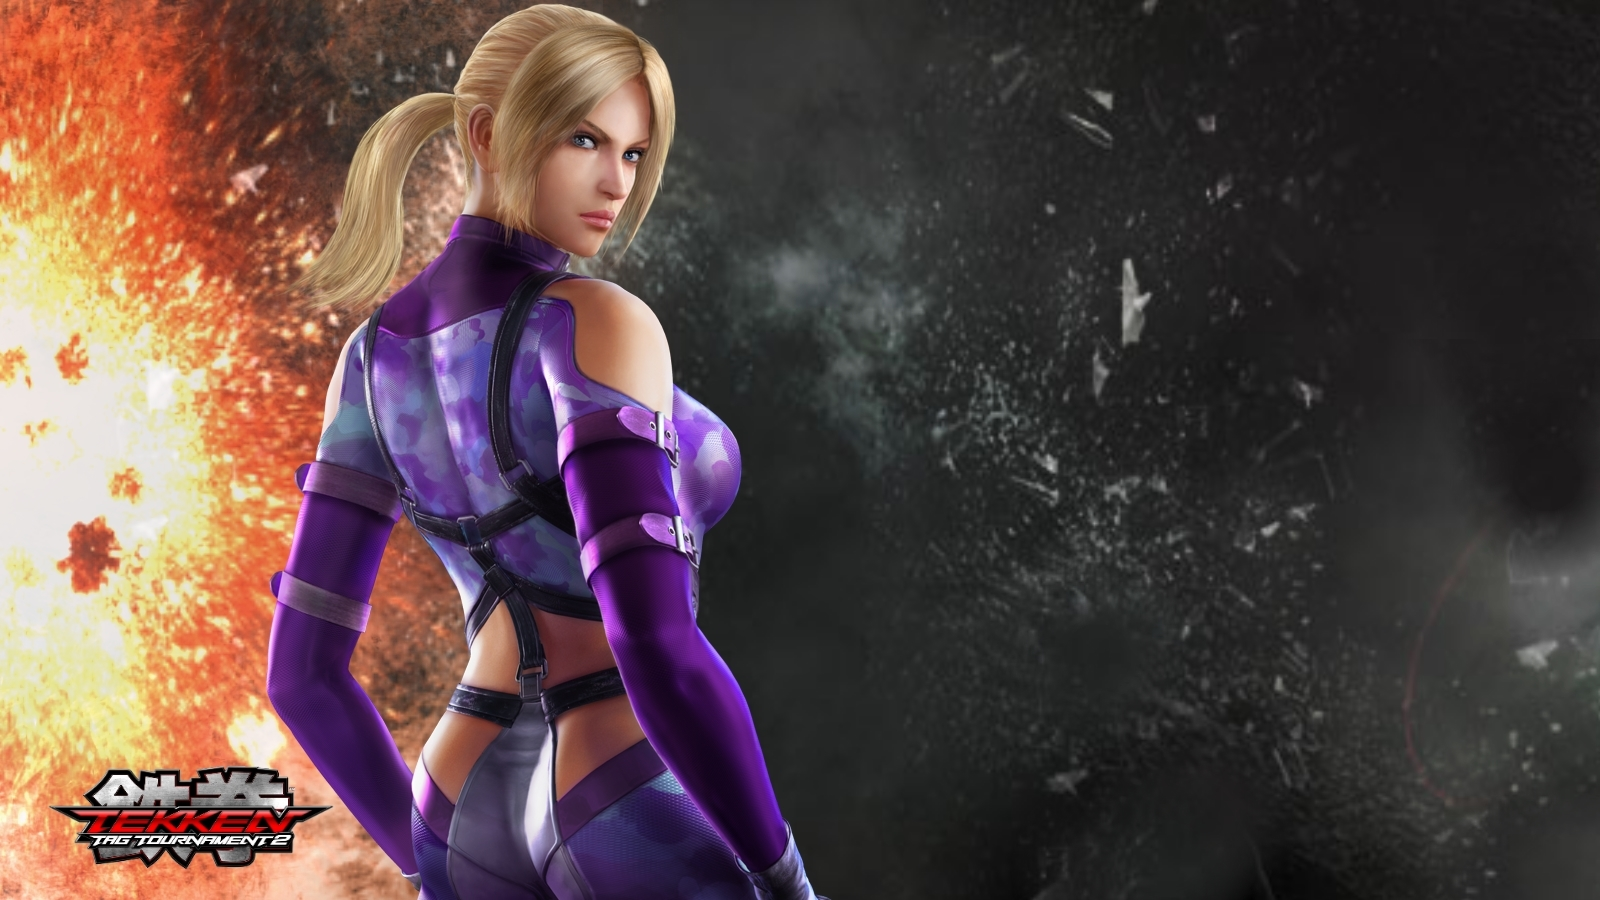 Eyesurfing Fanmade Tekken Tag Tournament 2 Wallpaper 1600x900